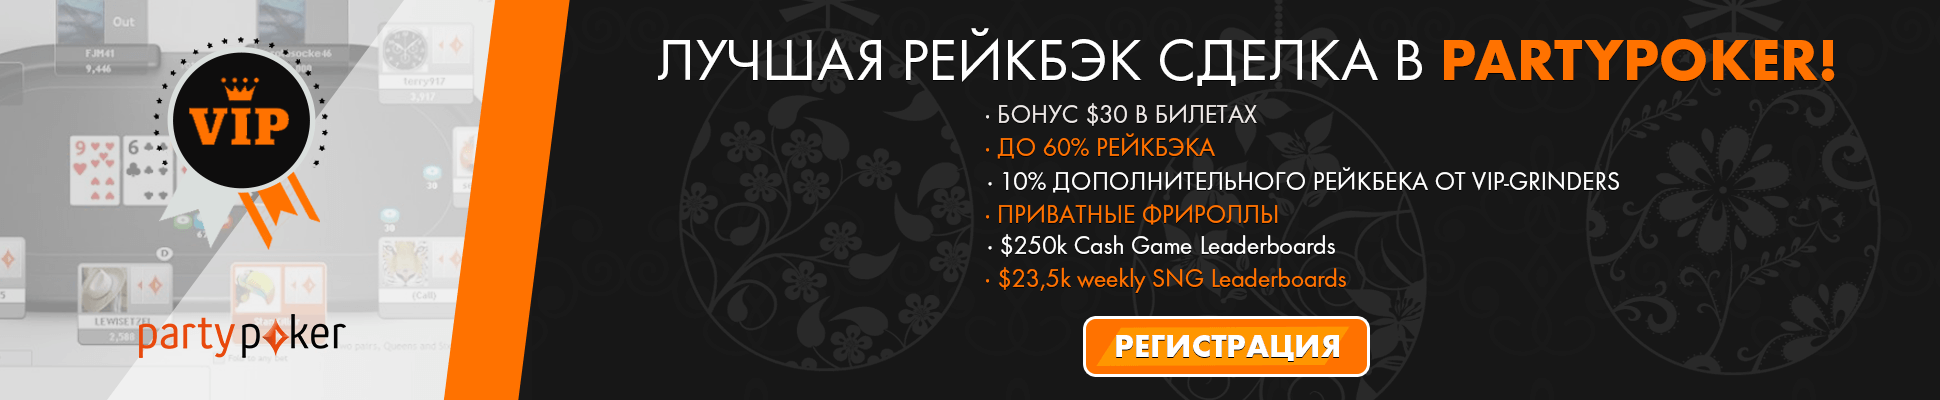 partypoker new banners slider version 1 RU APRIL